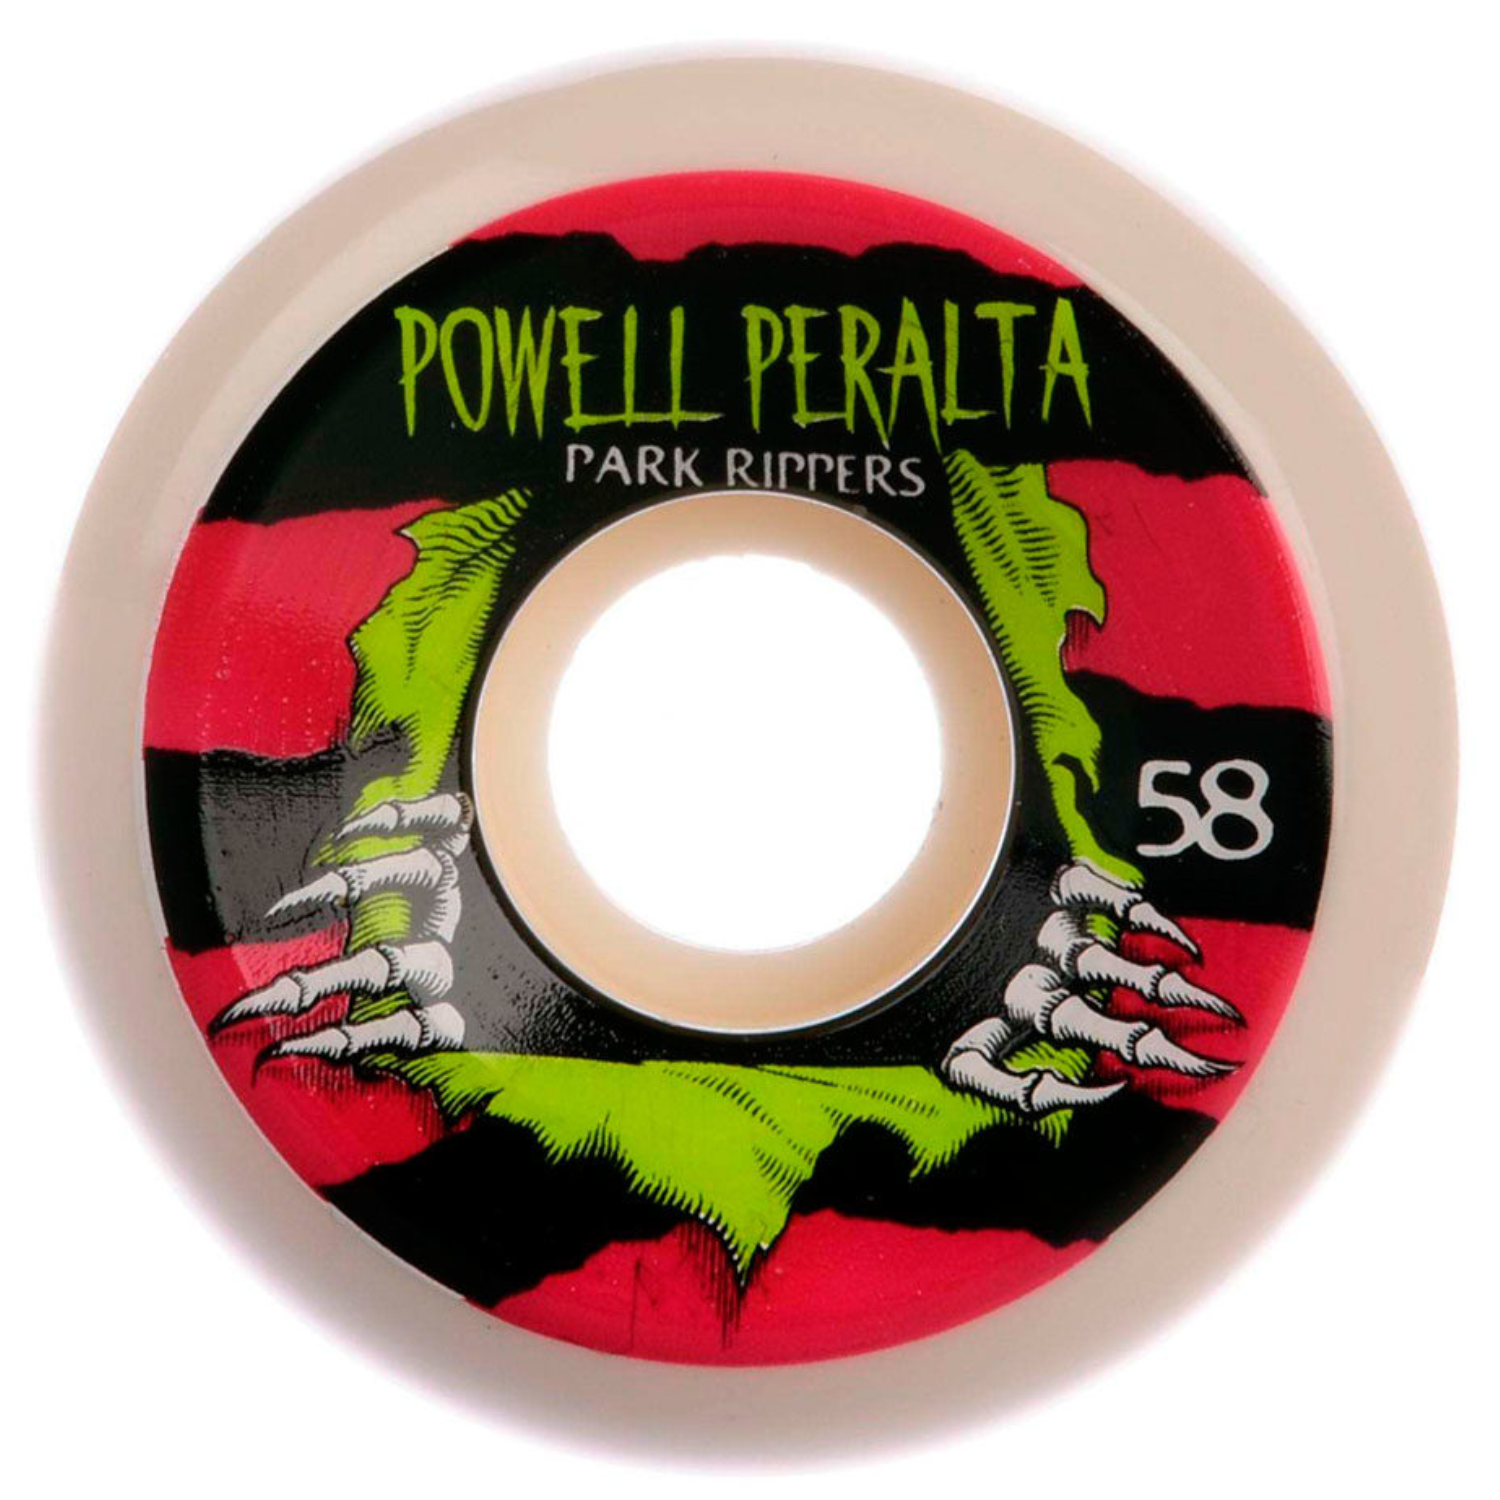 Llantas Powell Peralta Park Rippers 58mm